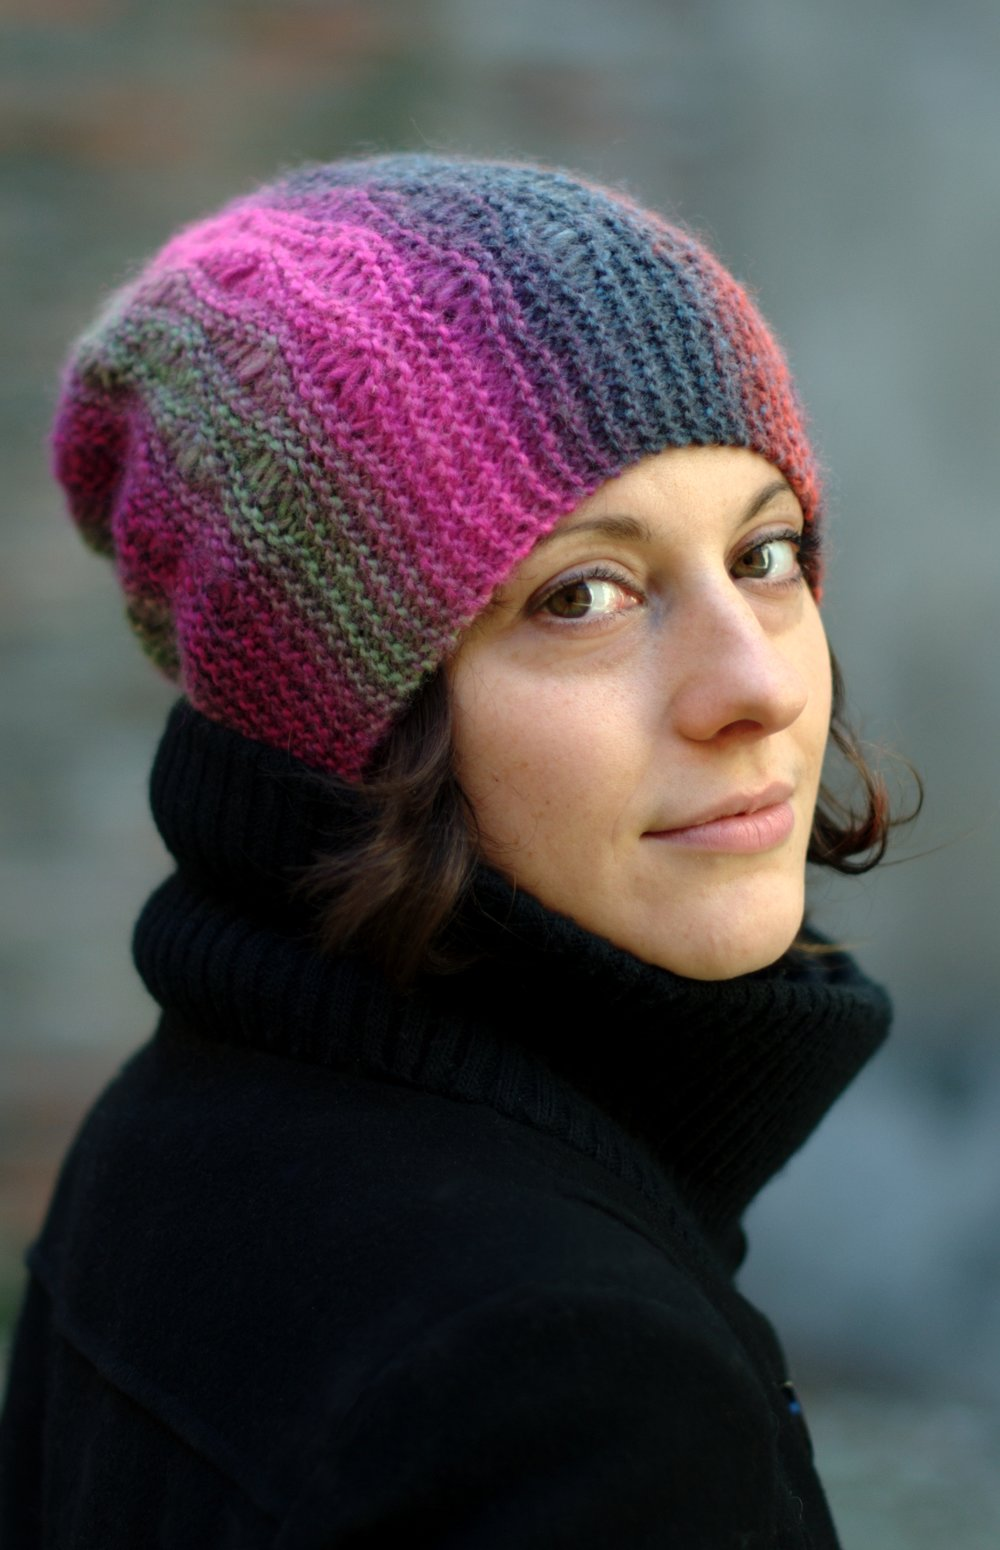 Marina sideways knit dropped stitch slouchy Hat knitting pattern